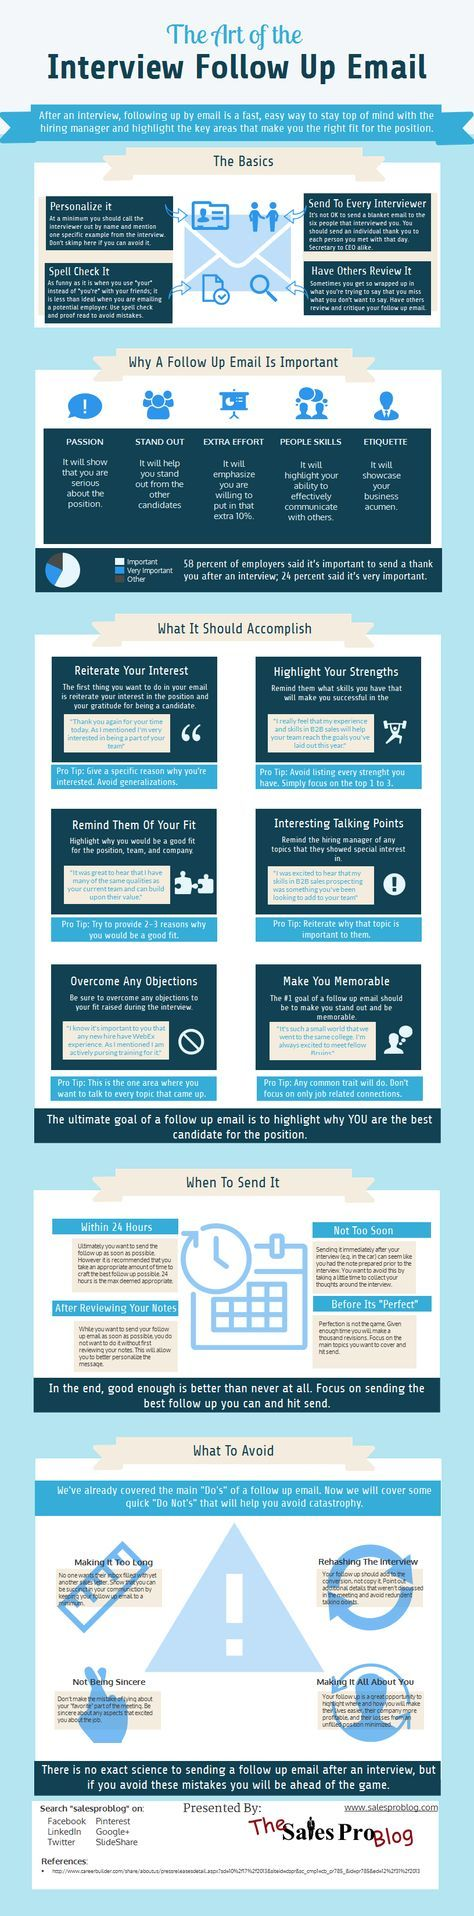 The Art Of The Interview Follow Up Email Infographic - Interview follow up emails are an often overlooked aspect of the job interview. And while there may not be an exact science to sending a follow up there are a few basic aspects you should know before your next interview. Find out more at www.salesproblog....